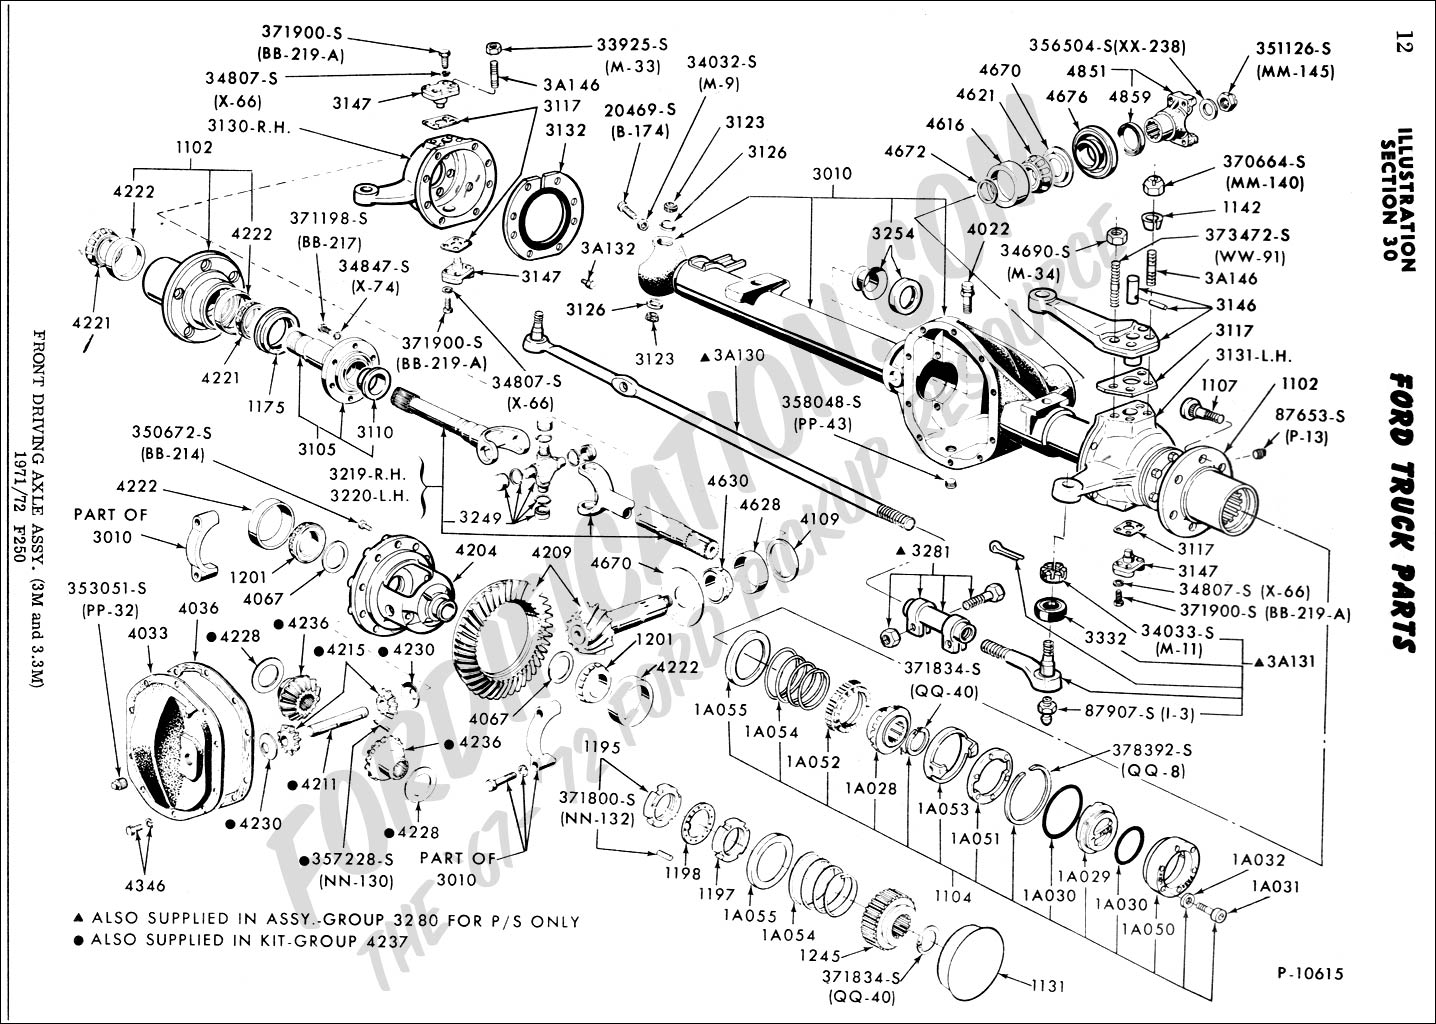 hight resolution of 2000 f250 front axle diagram wiring diagrams u2022 99 f250 super duty fuse diagram 2000